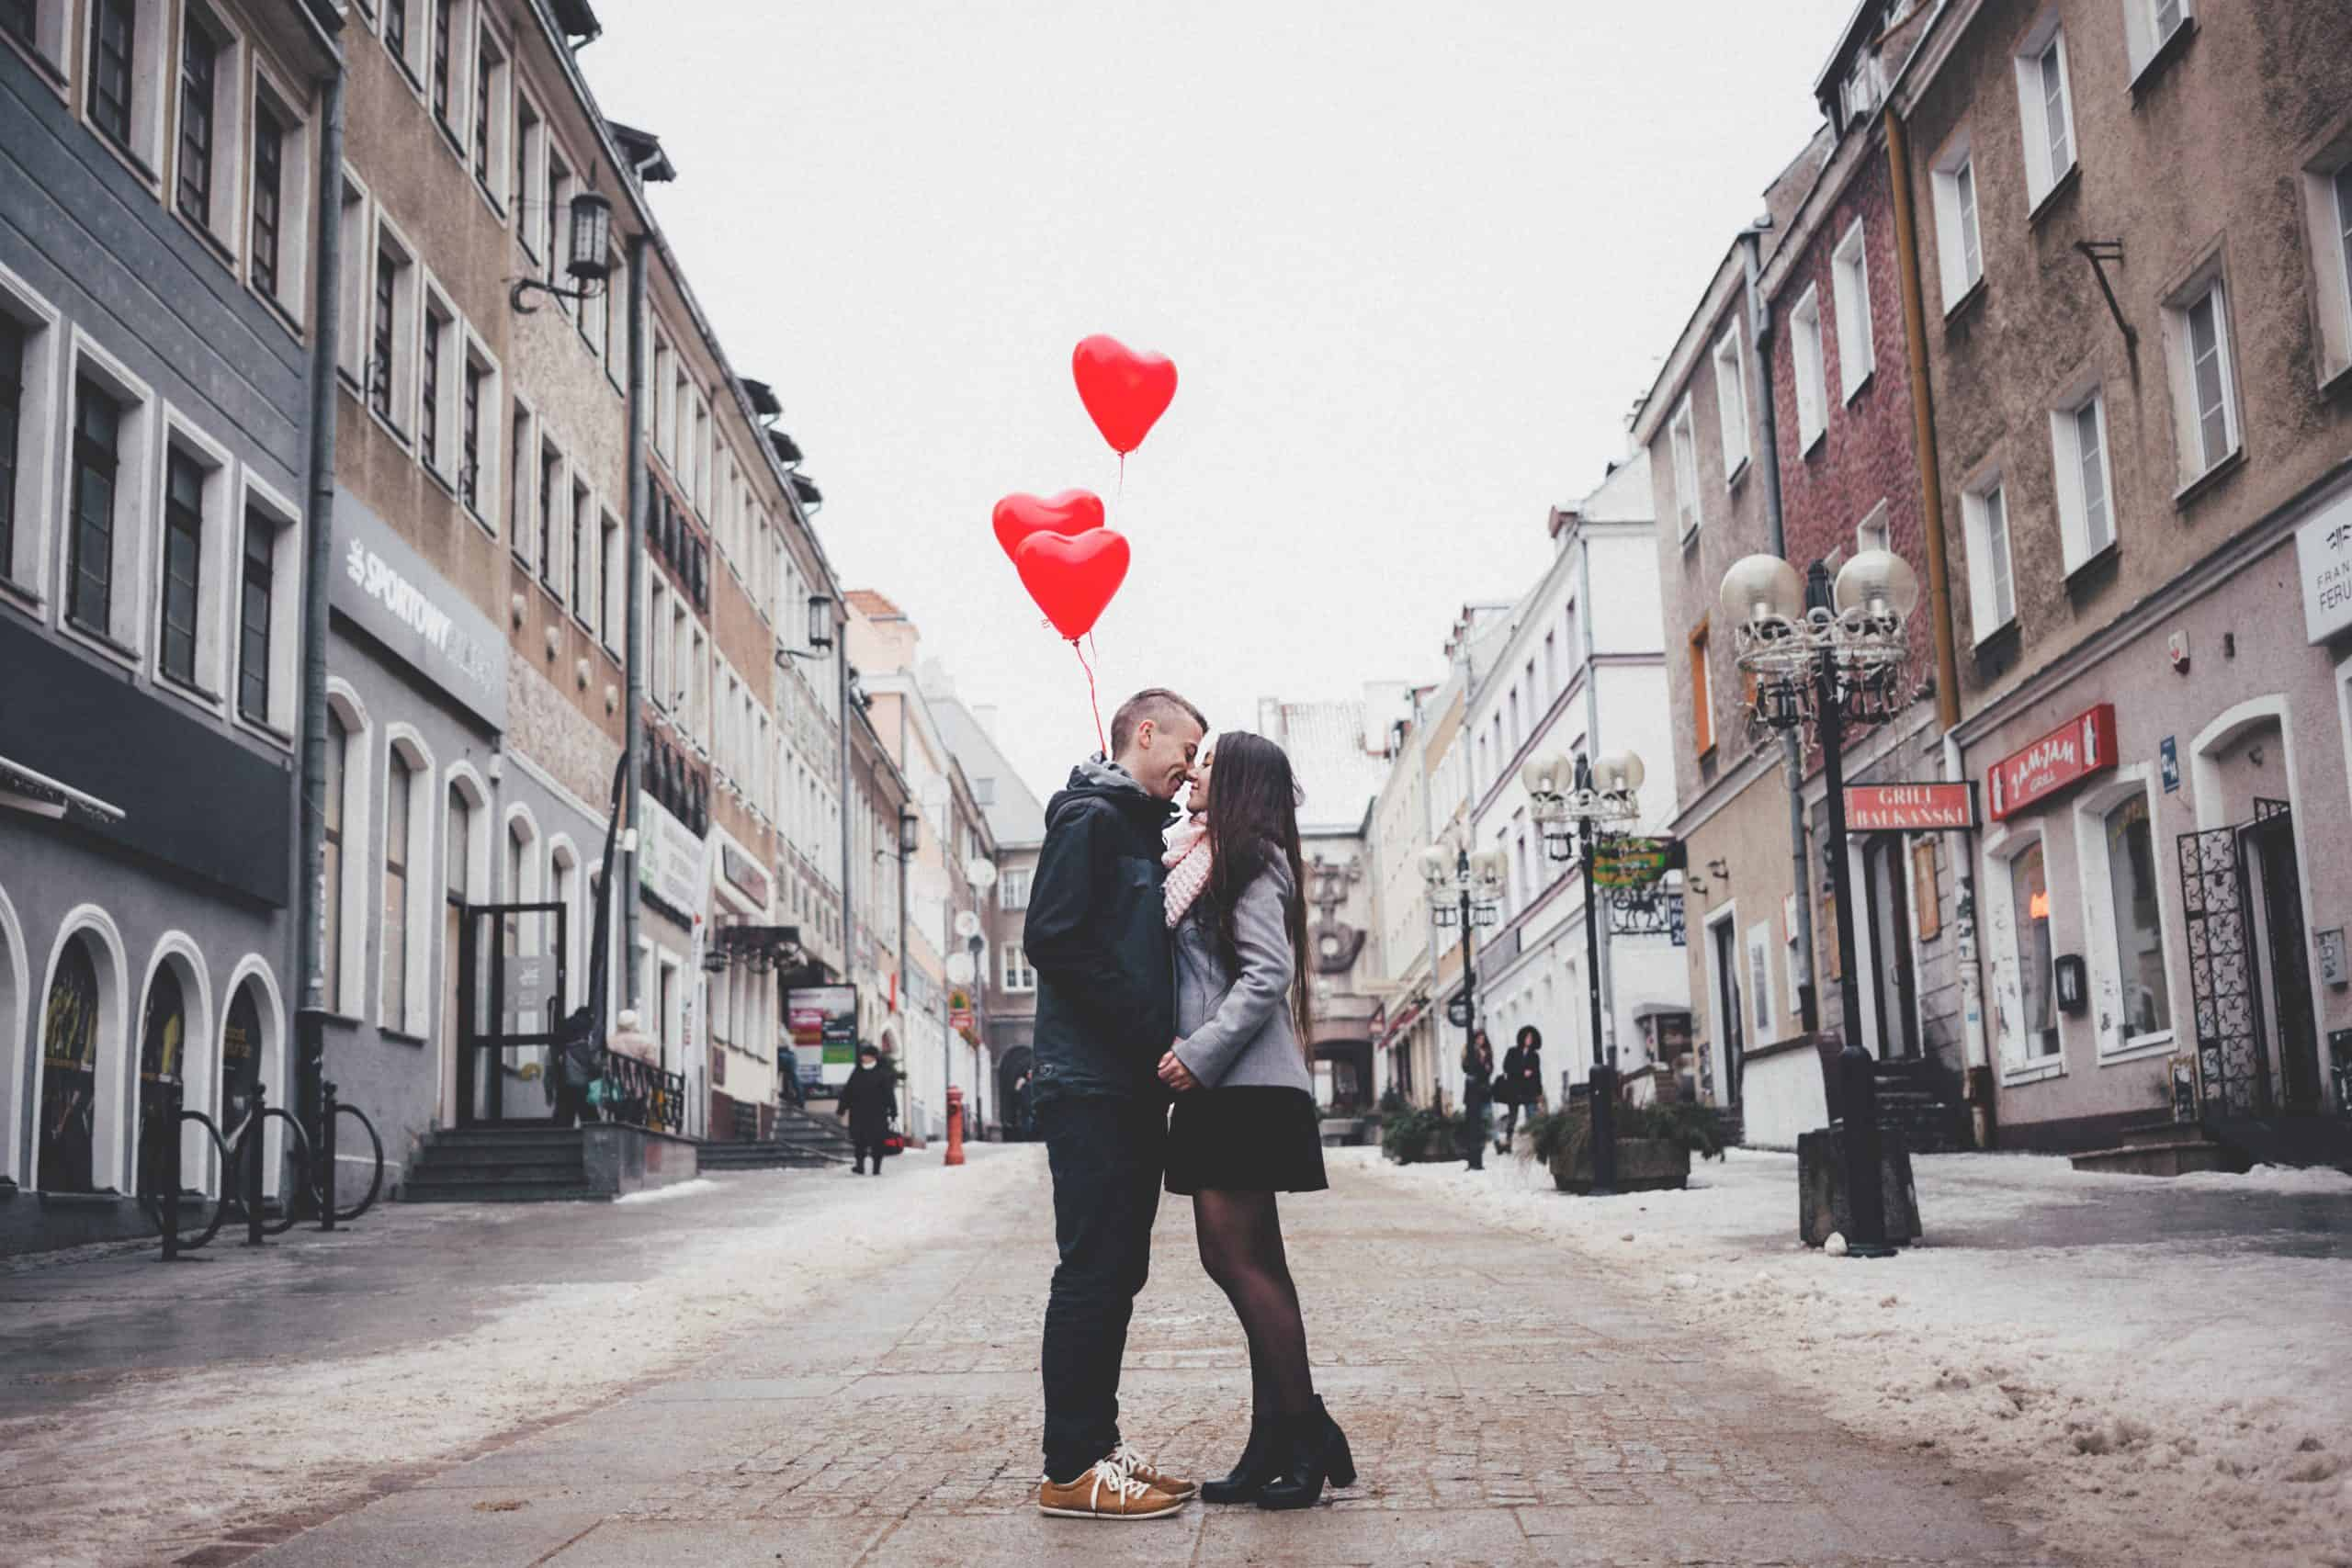 man holding heart shaped baloons kissing his girlfriend in the middle of the street